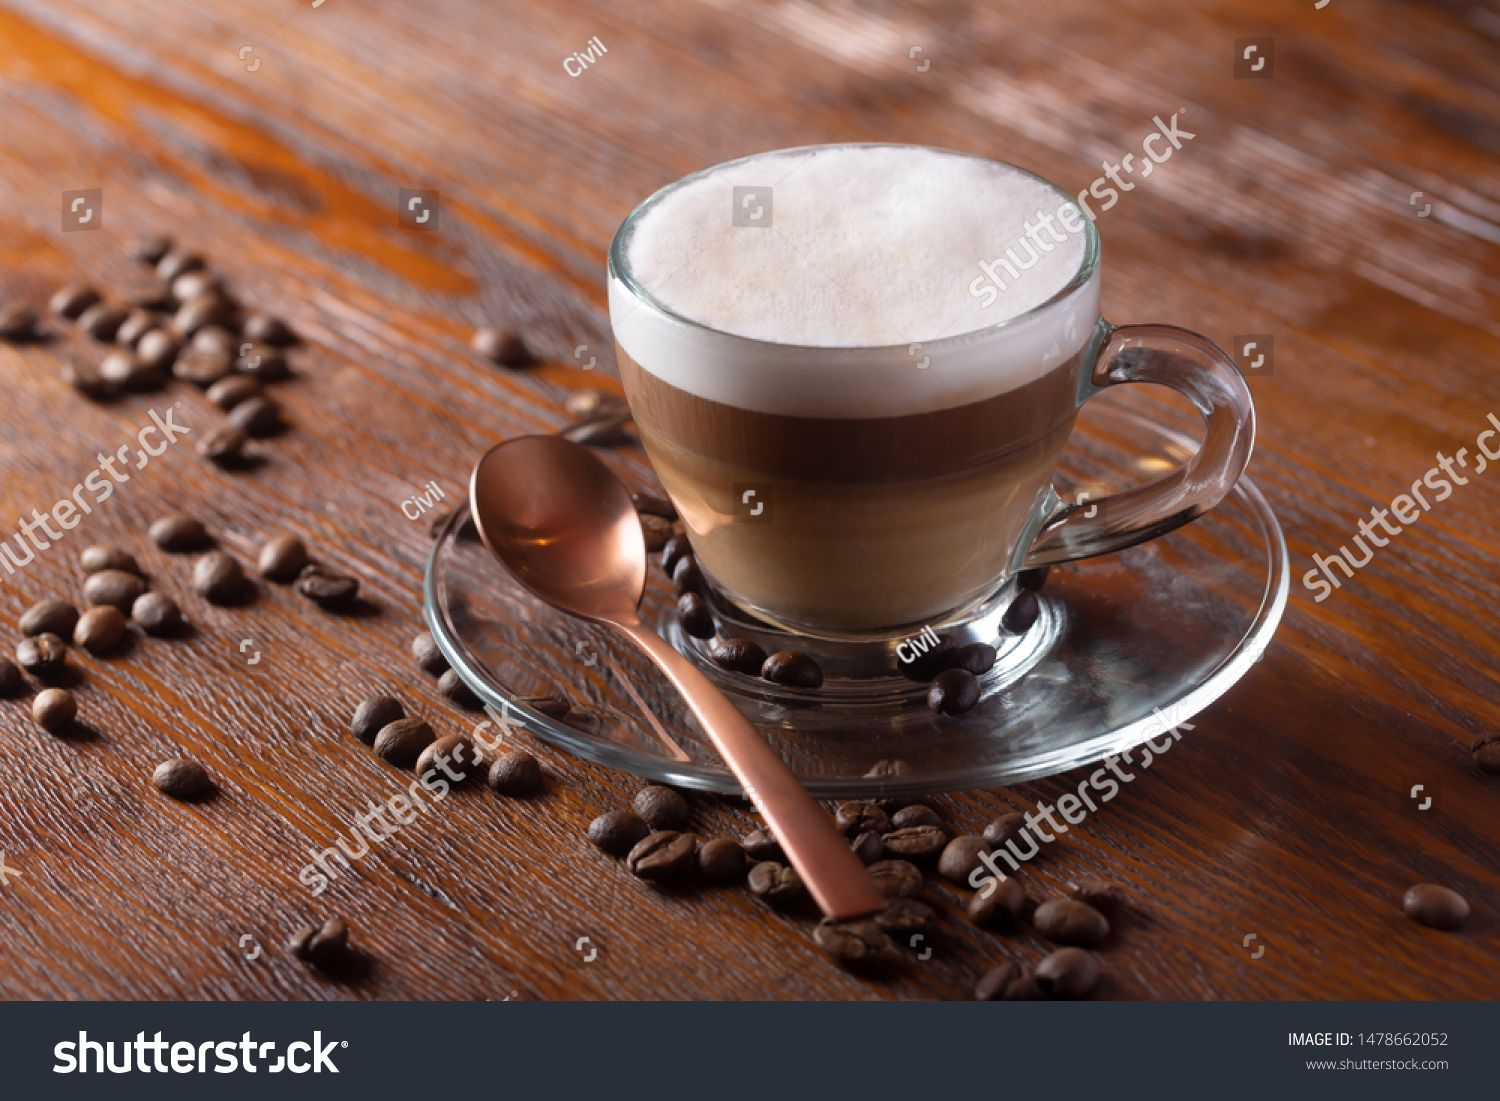 Cup of coffe with milk on a dark background Hot latte or Cappuccino prepared with milk on a wooden table with copy space